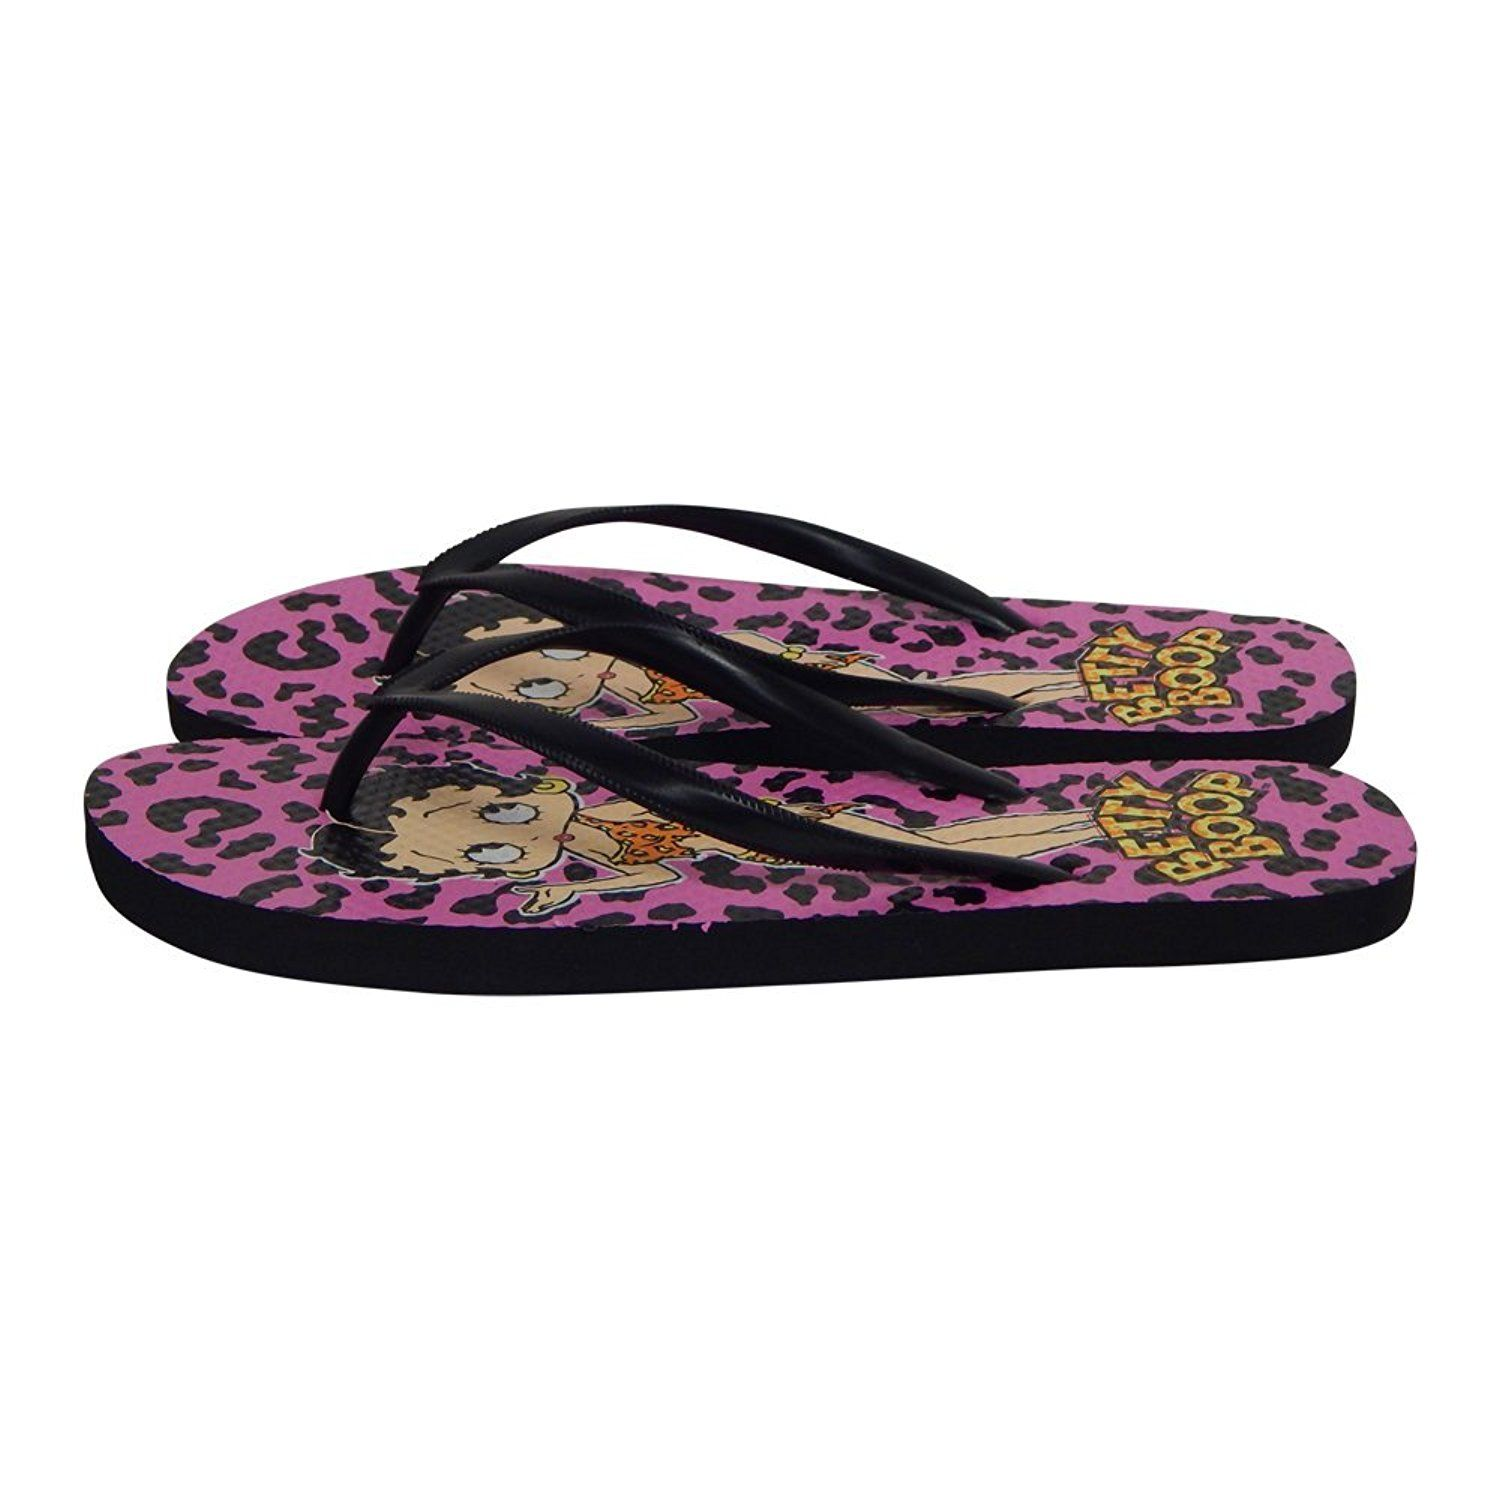 9ec971becb9b Betty Boop Women s Flip Flop Sandal Thong     You can get additional  details at